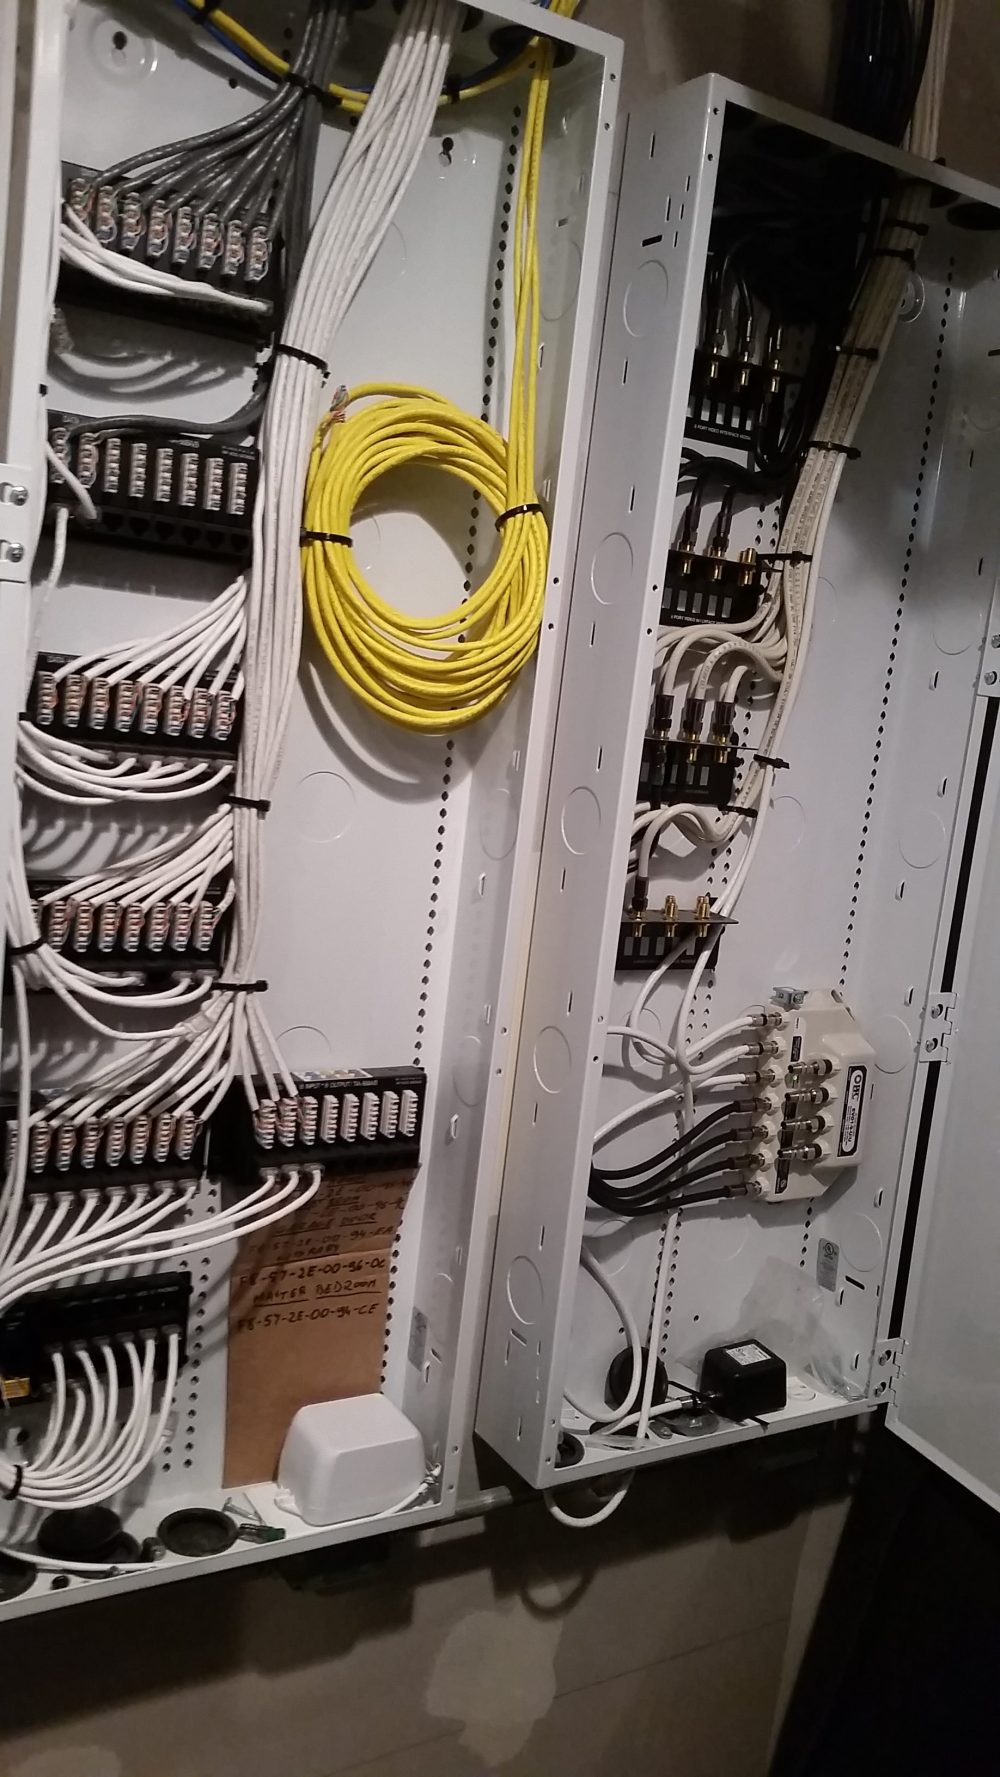 medium resolution of this is the fourth post in a series on how to prewire low voltage wiring and structured cabling in your home we ll be focusing on how to install a